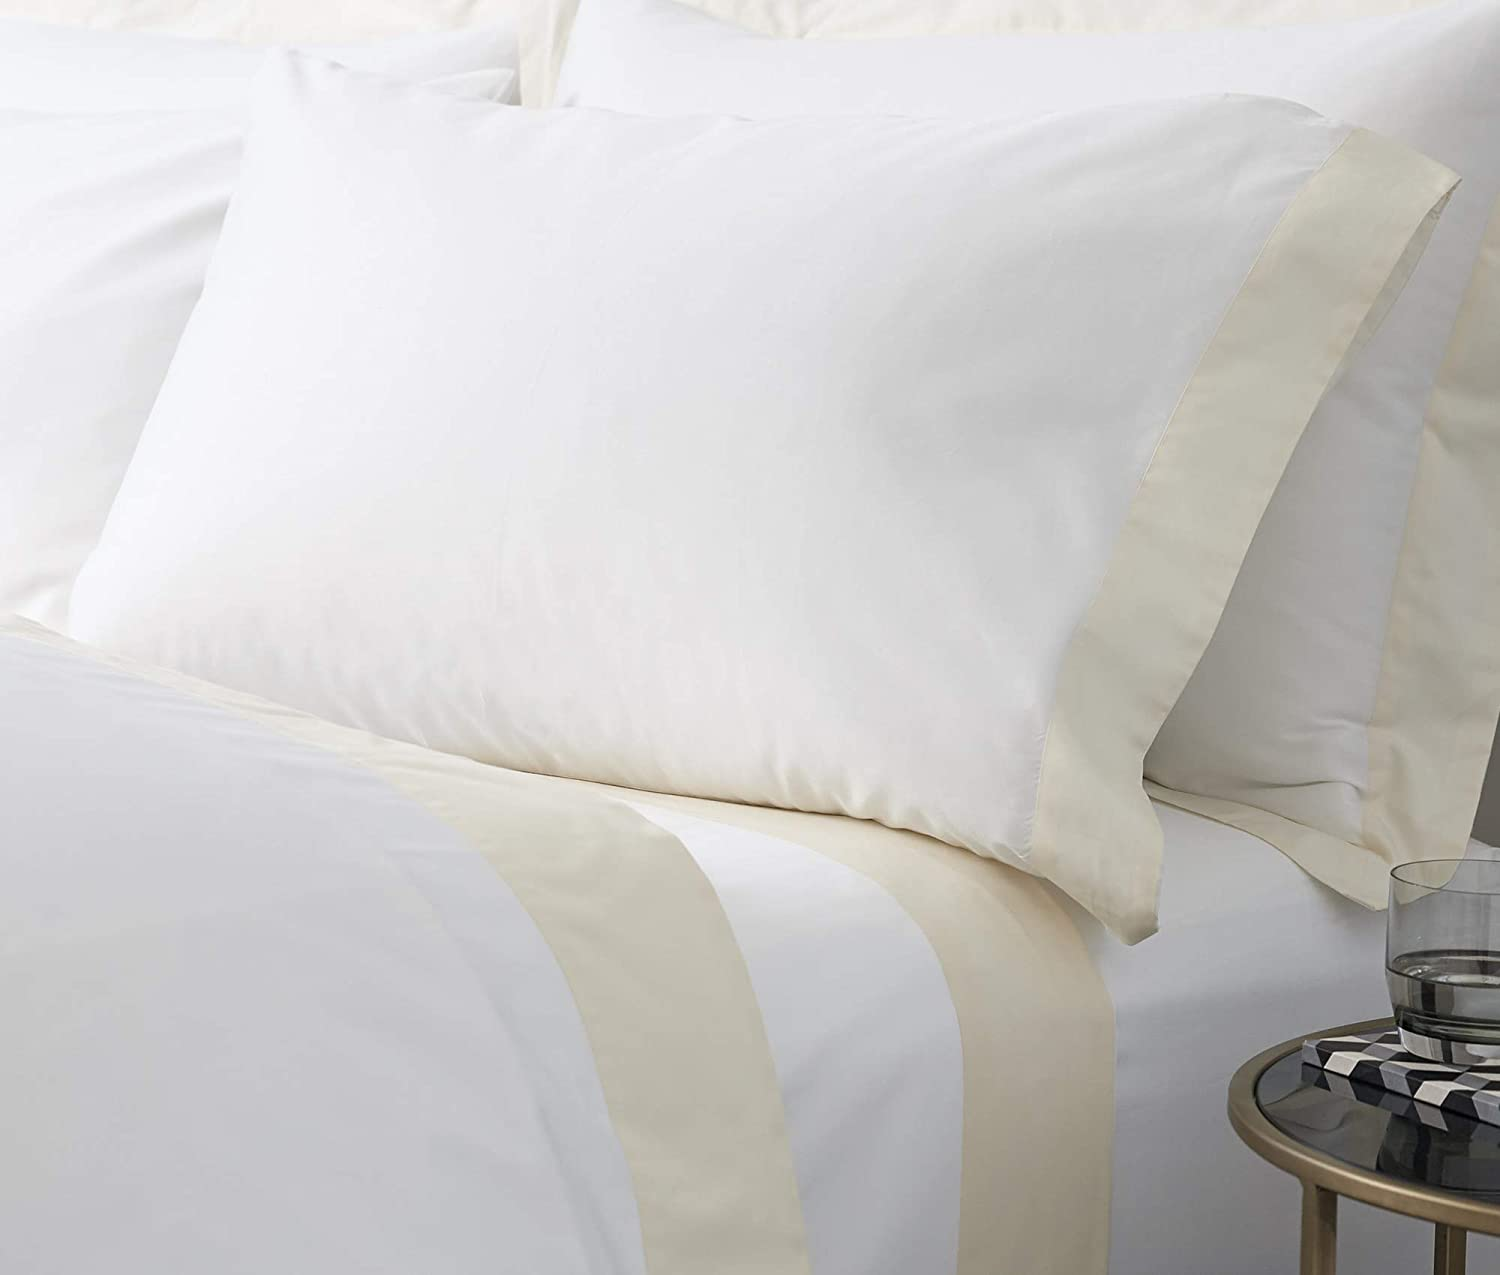 Bedify Collection American Size Set of 2pcs Pillow Case 400 Thread Count Standard 20x26 Inch Size Export Quality White Solid Egyptian Cotton